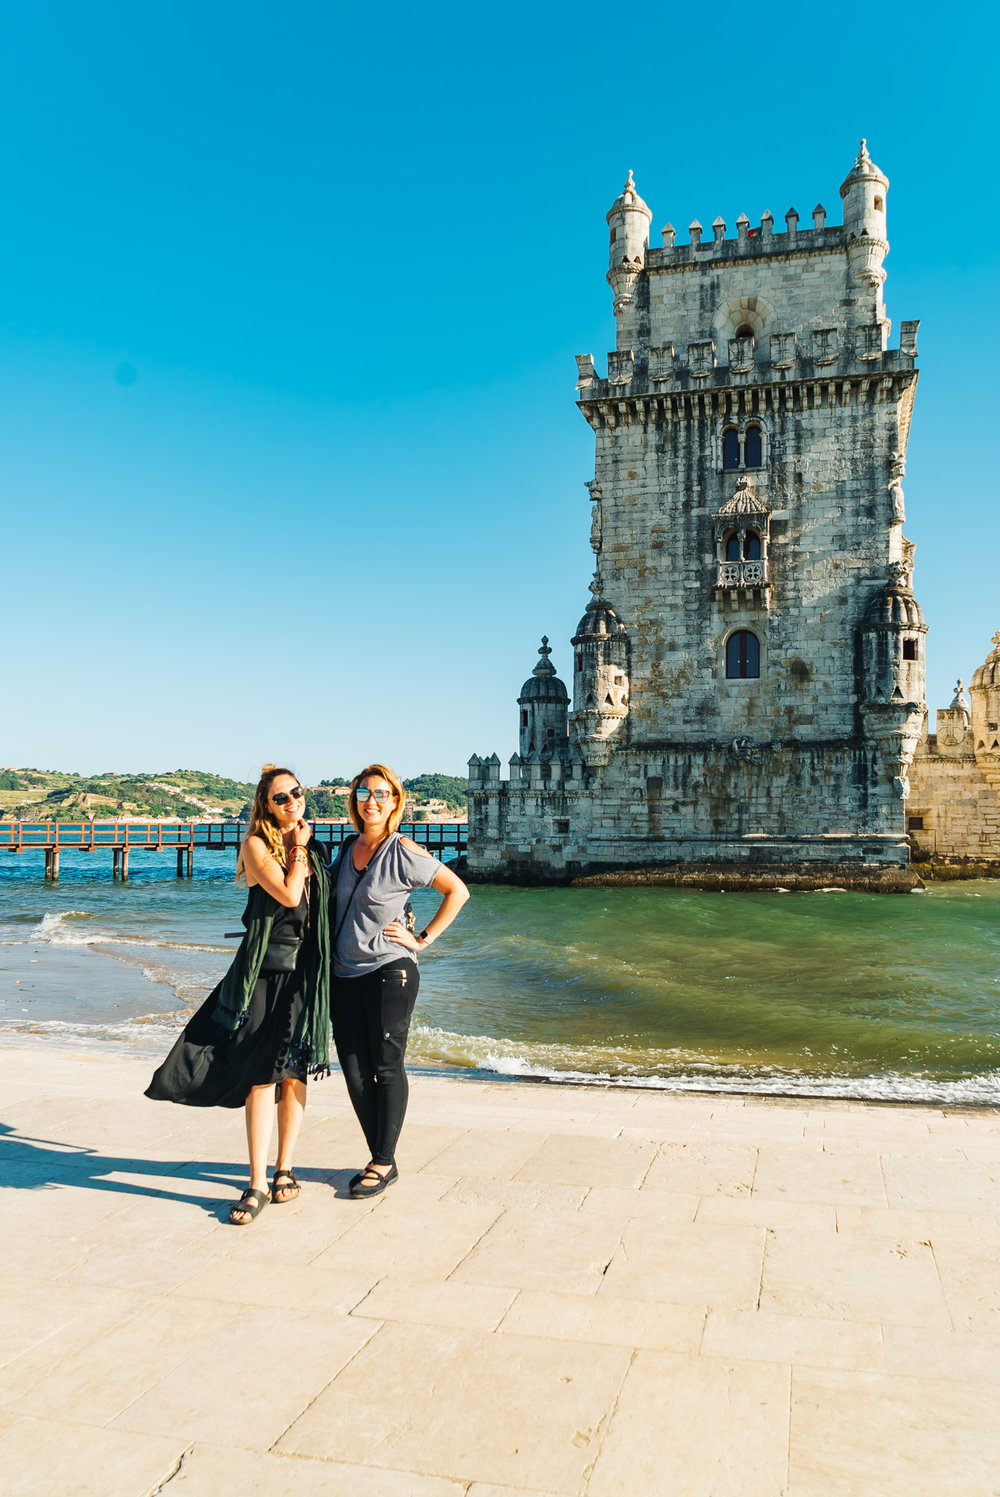 At the Belem Tower with my new friend I met on the tour